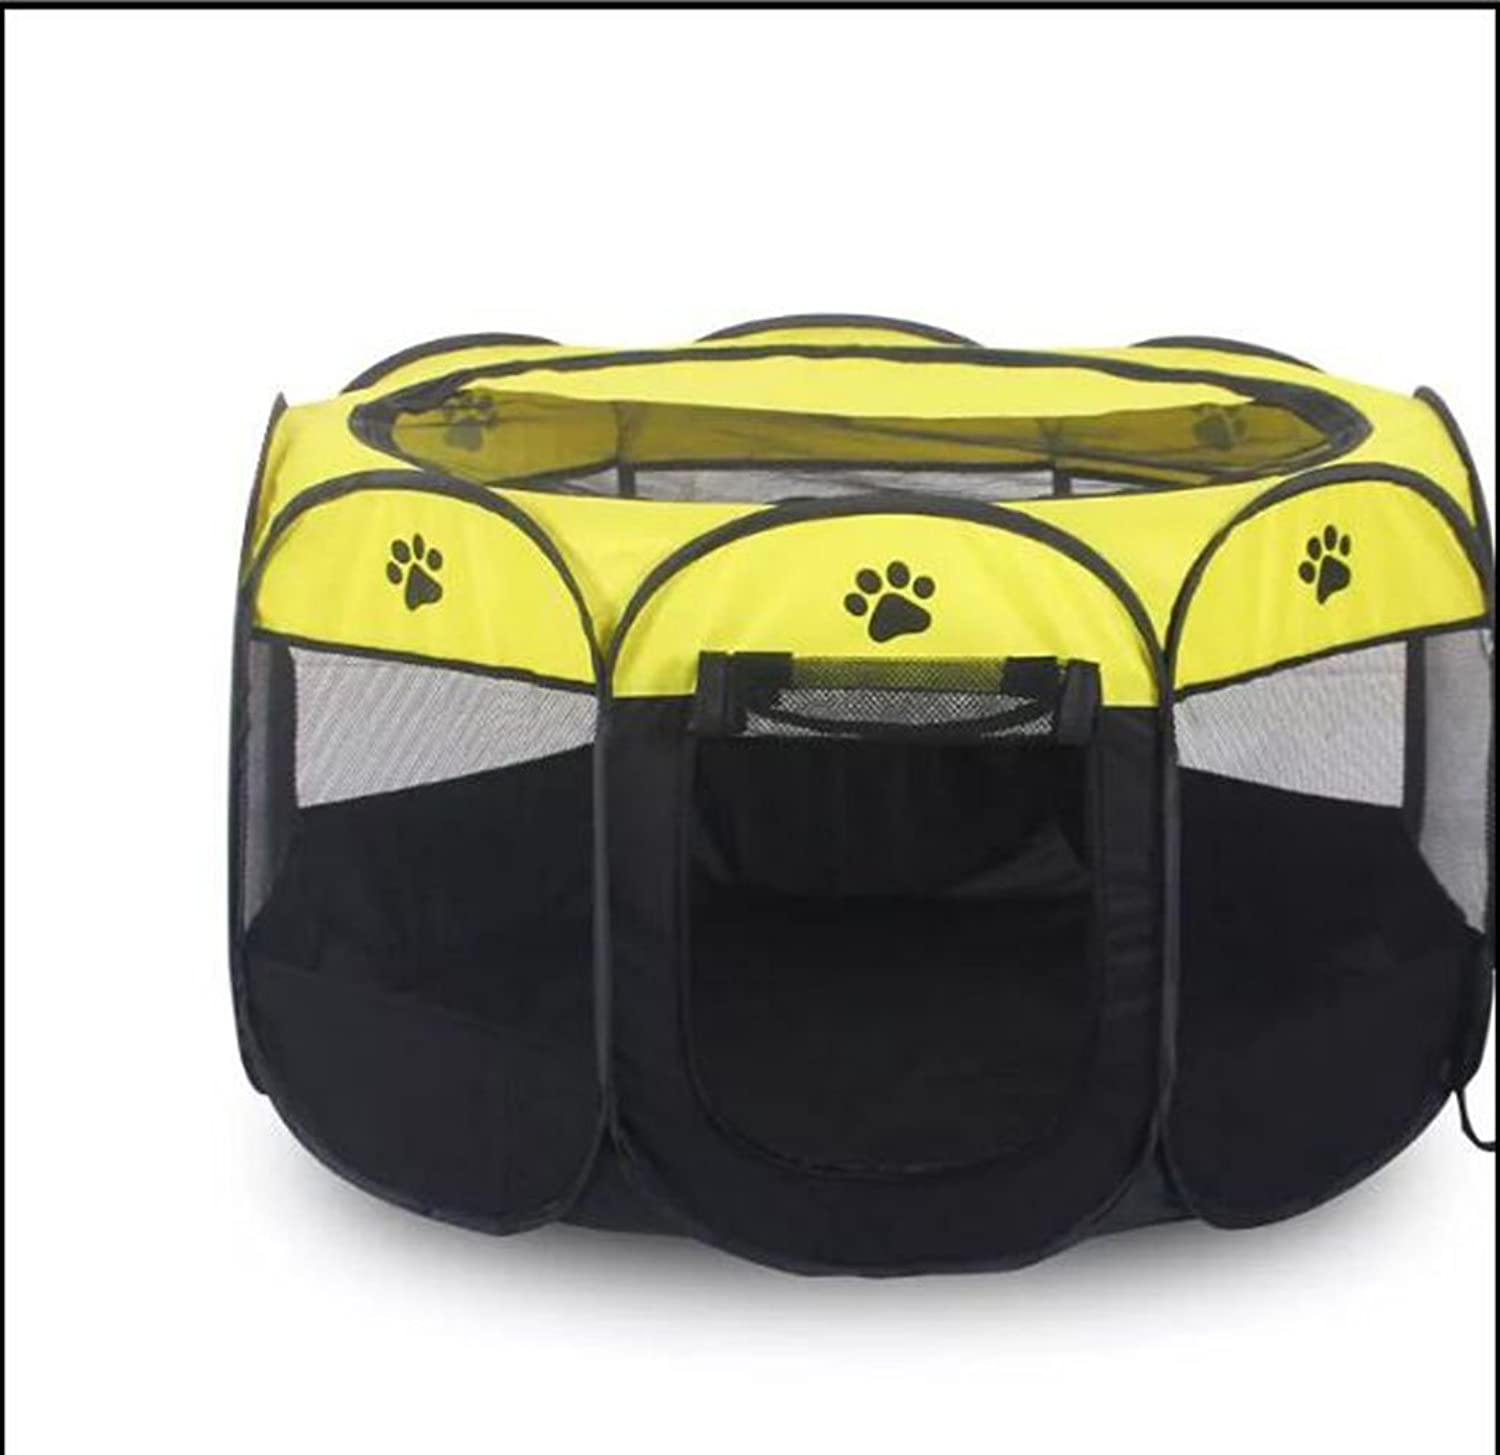 Pet Production Property Box Production Bed Outdoor Folding Dog Closed Production Supplies, Yellow,S